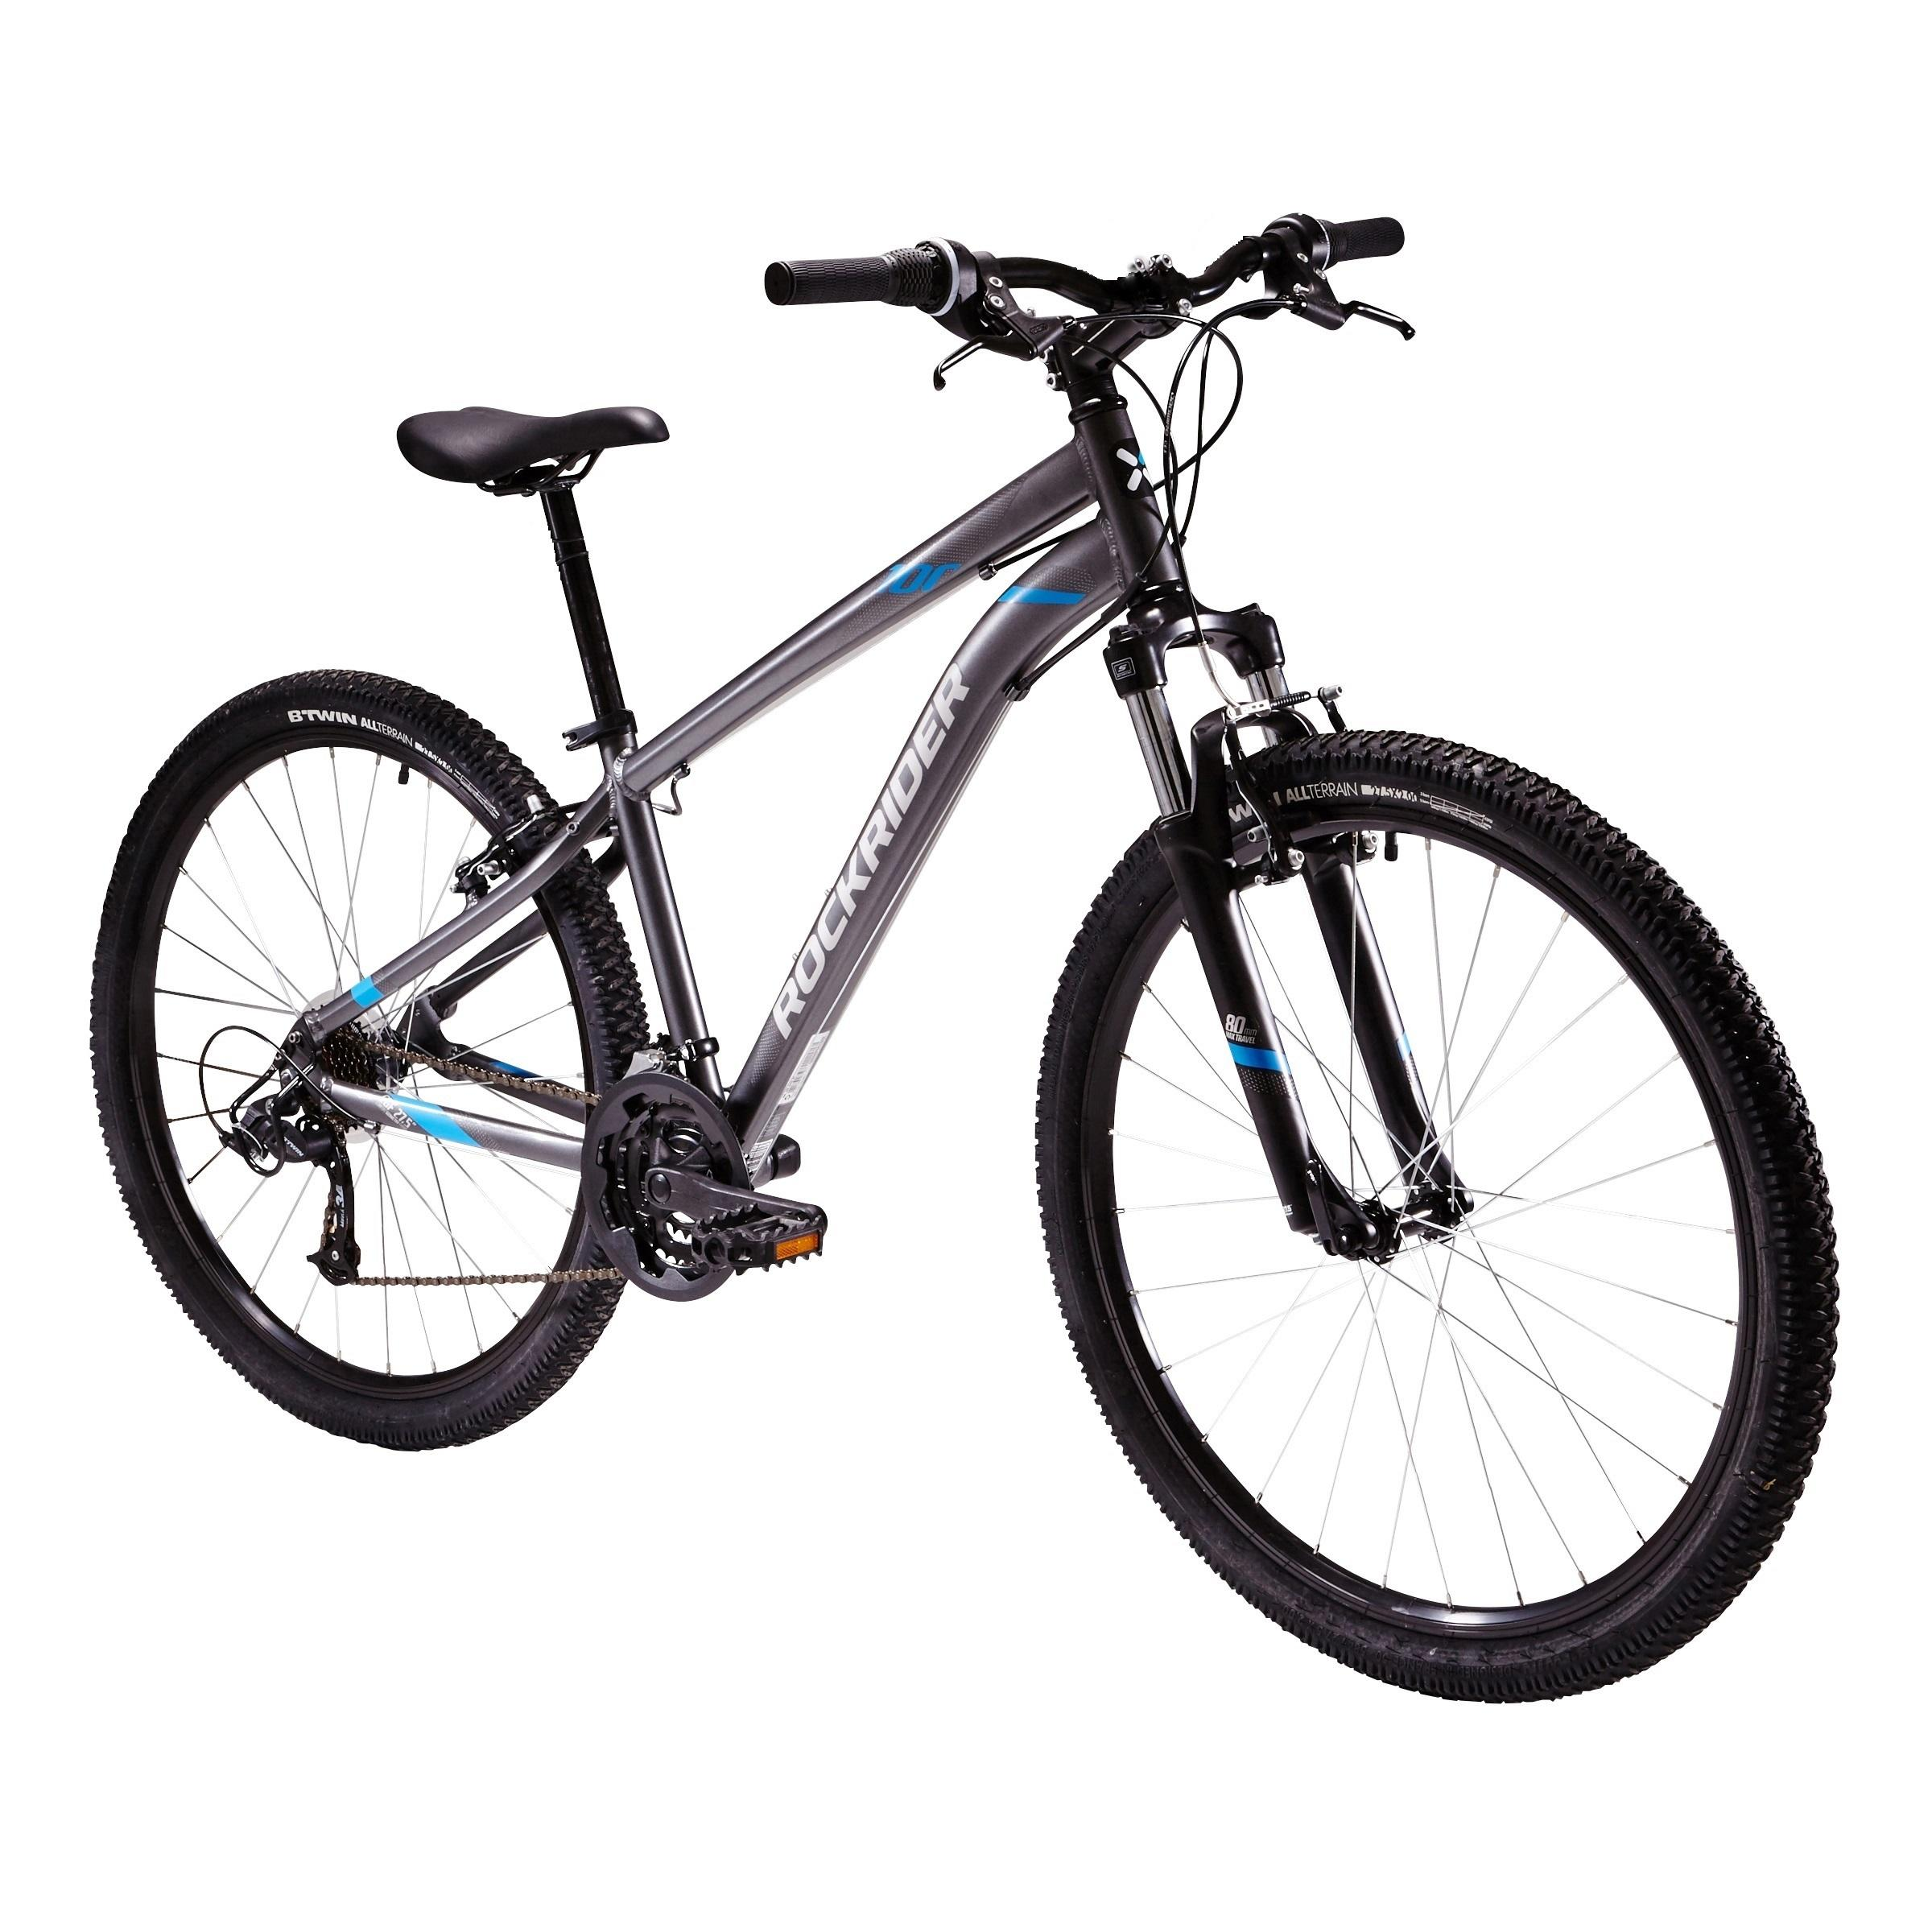 ROCKRIDER ST100 MOUNTAIN BIKE - GREY